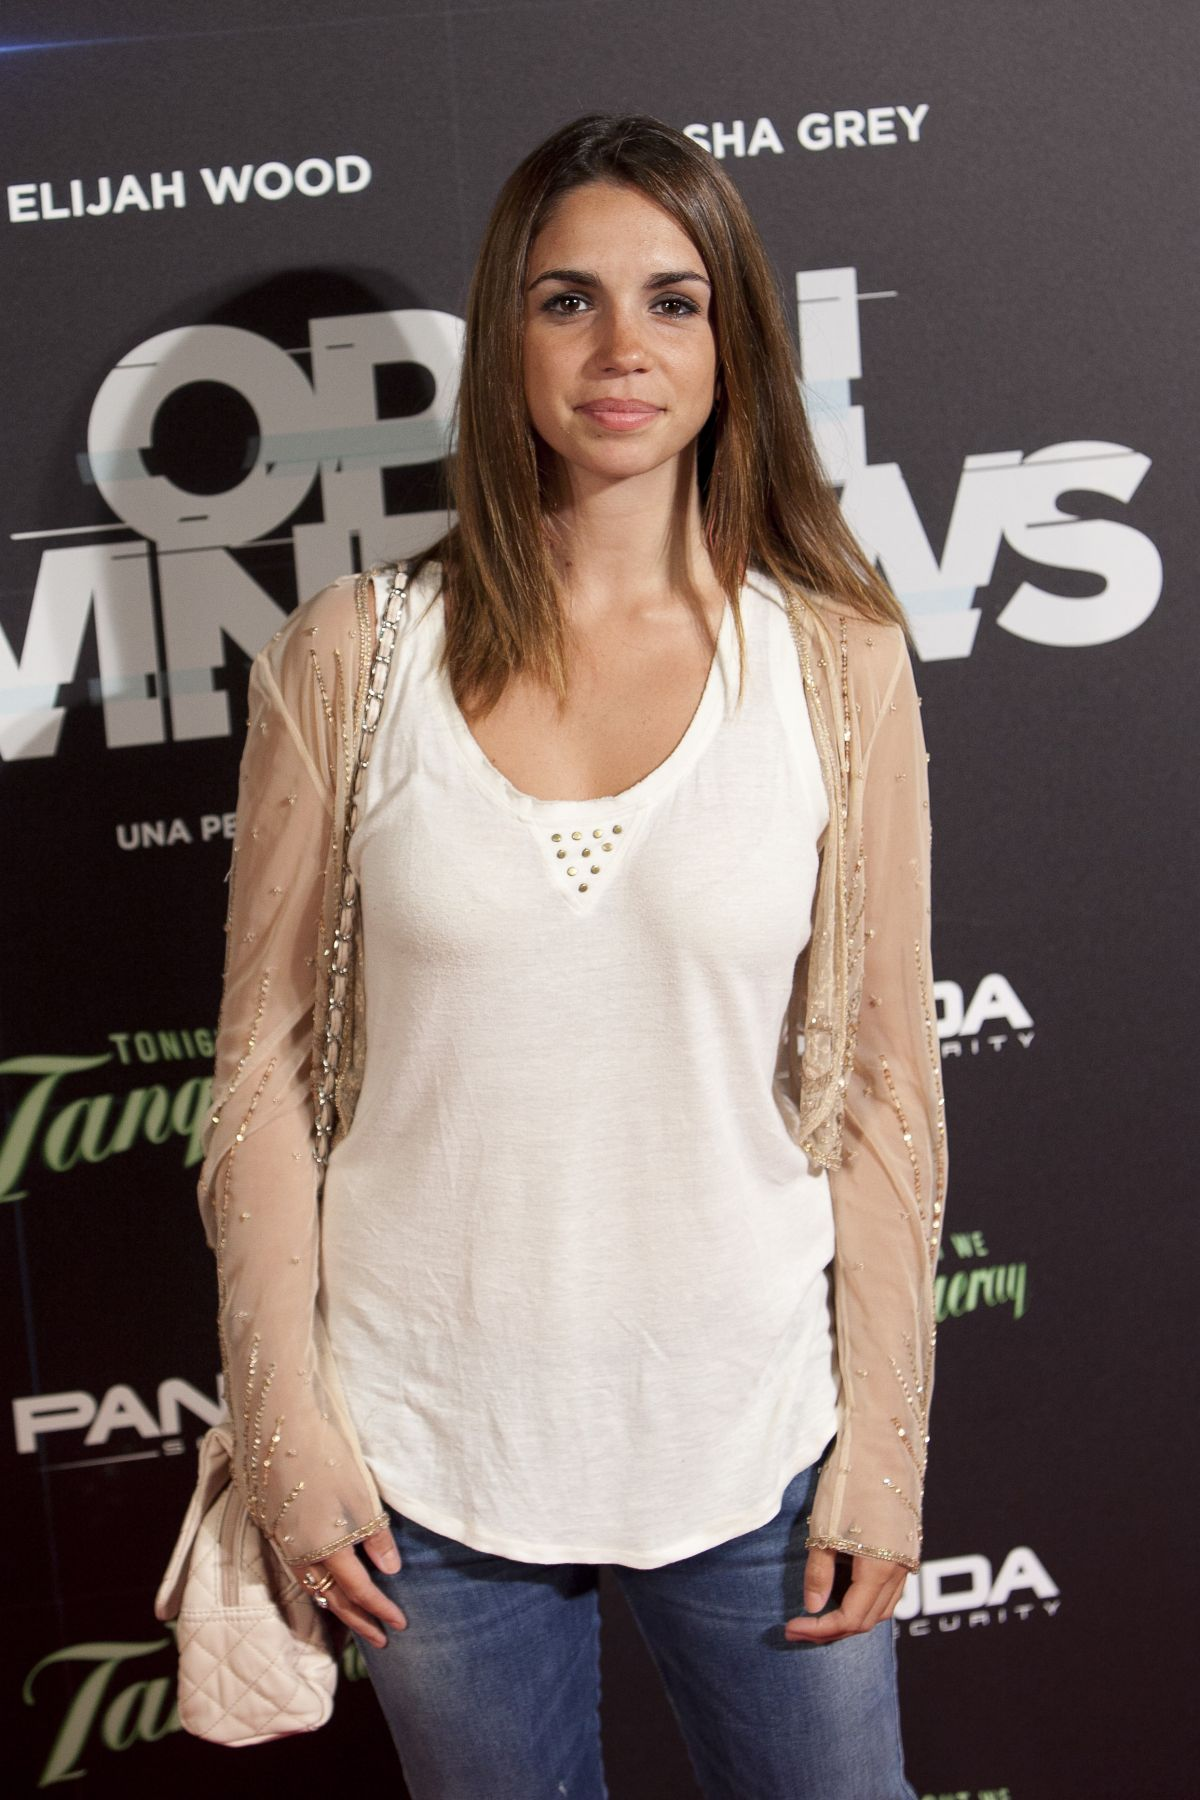 ELENA FURIASE at Open Windows Premiere in Madrid